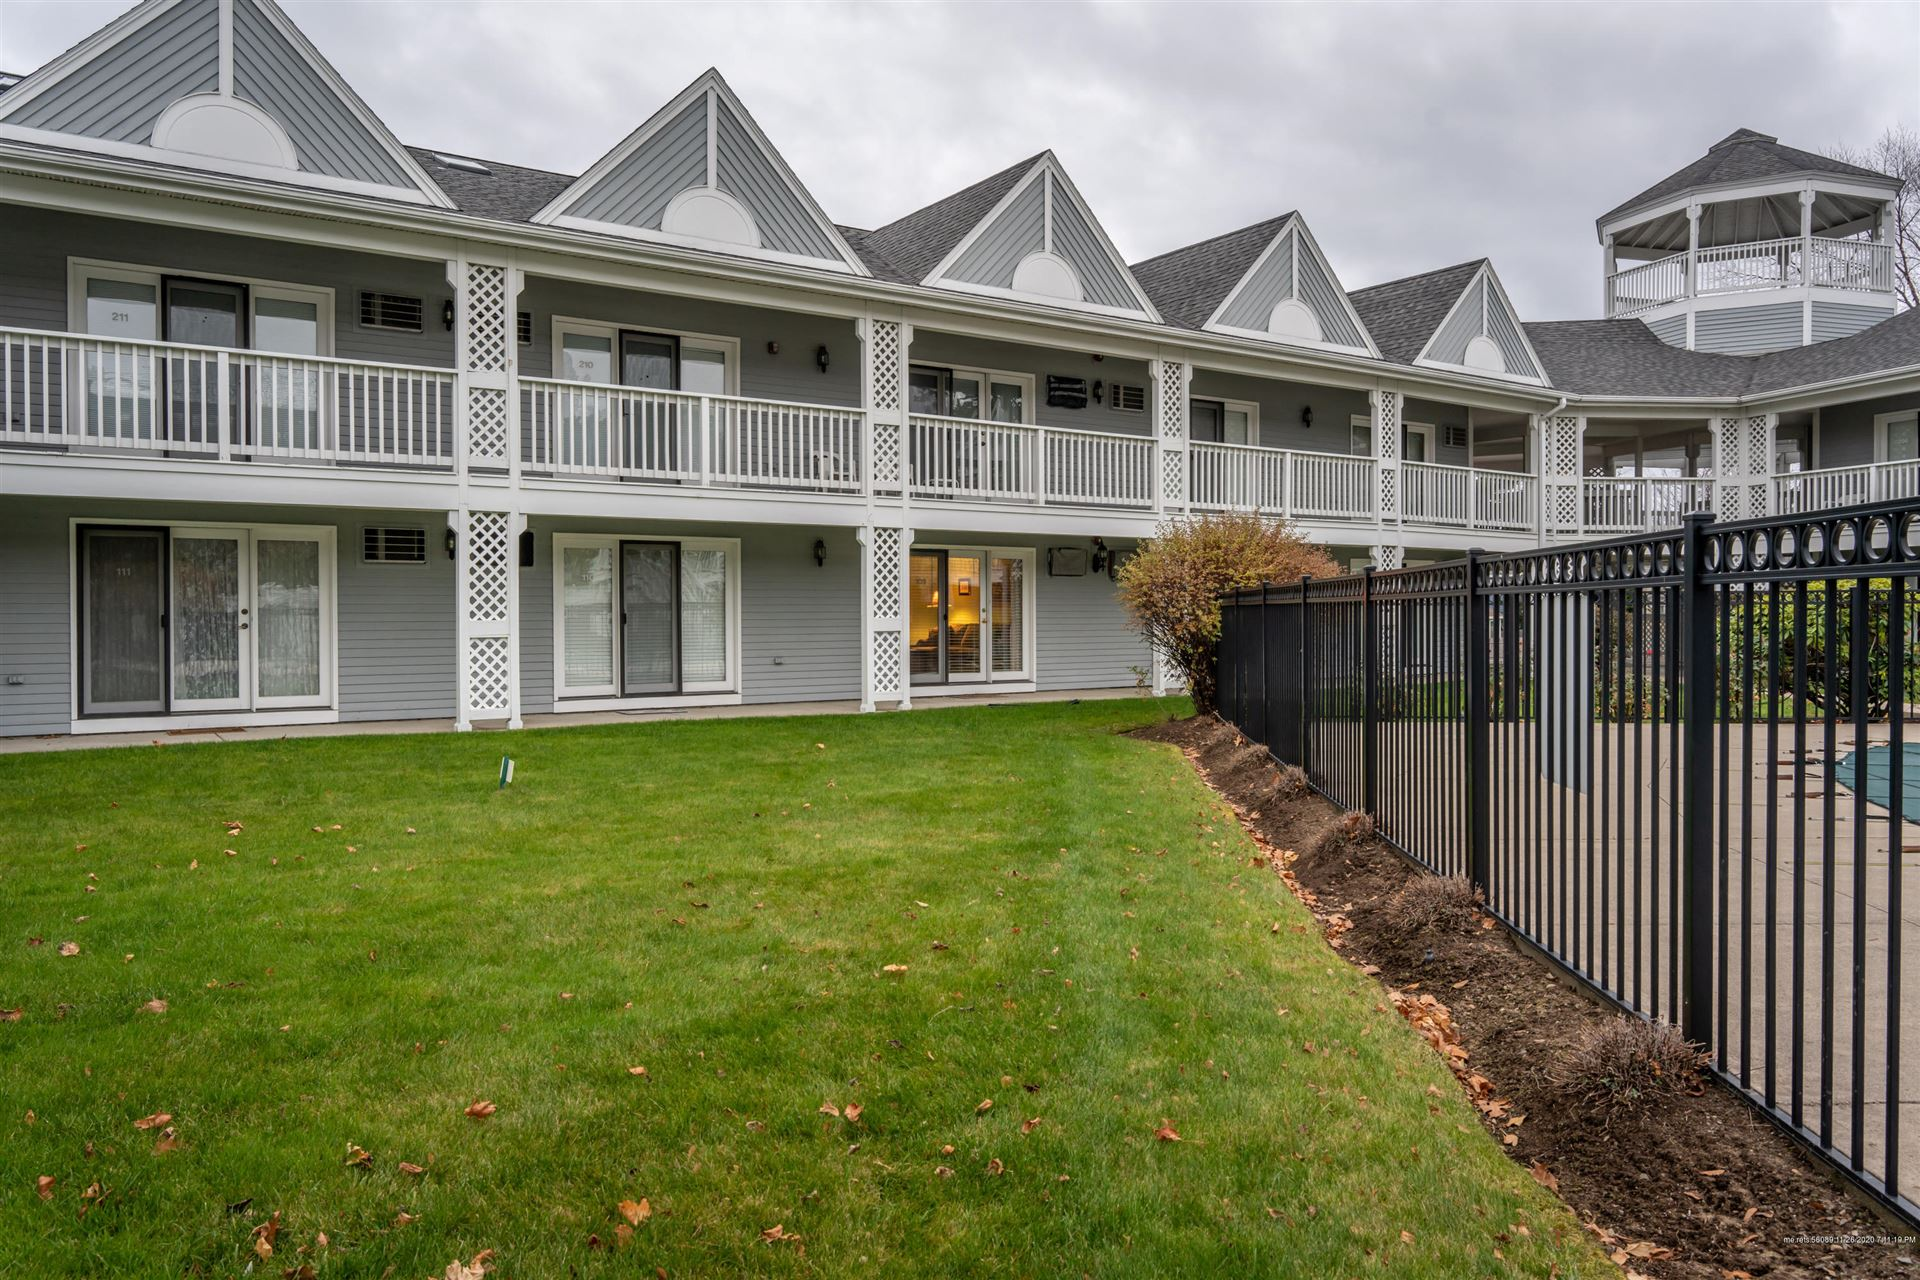 Photo of 444 Main Street #109, Ogunquit, ME 03907 (MLS # 1476902)